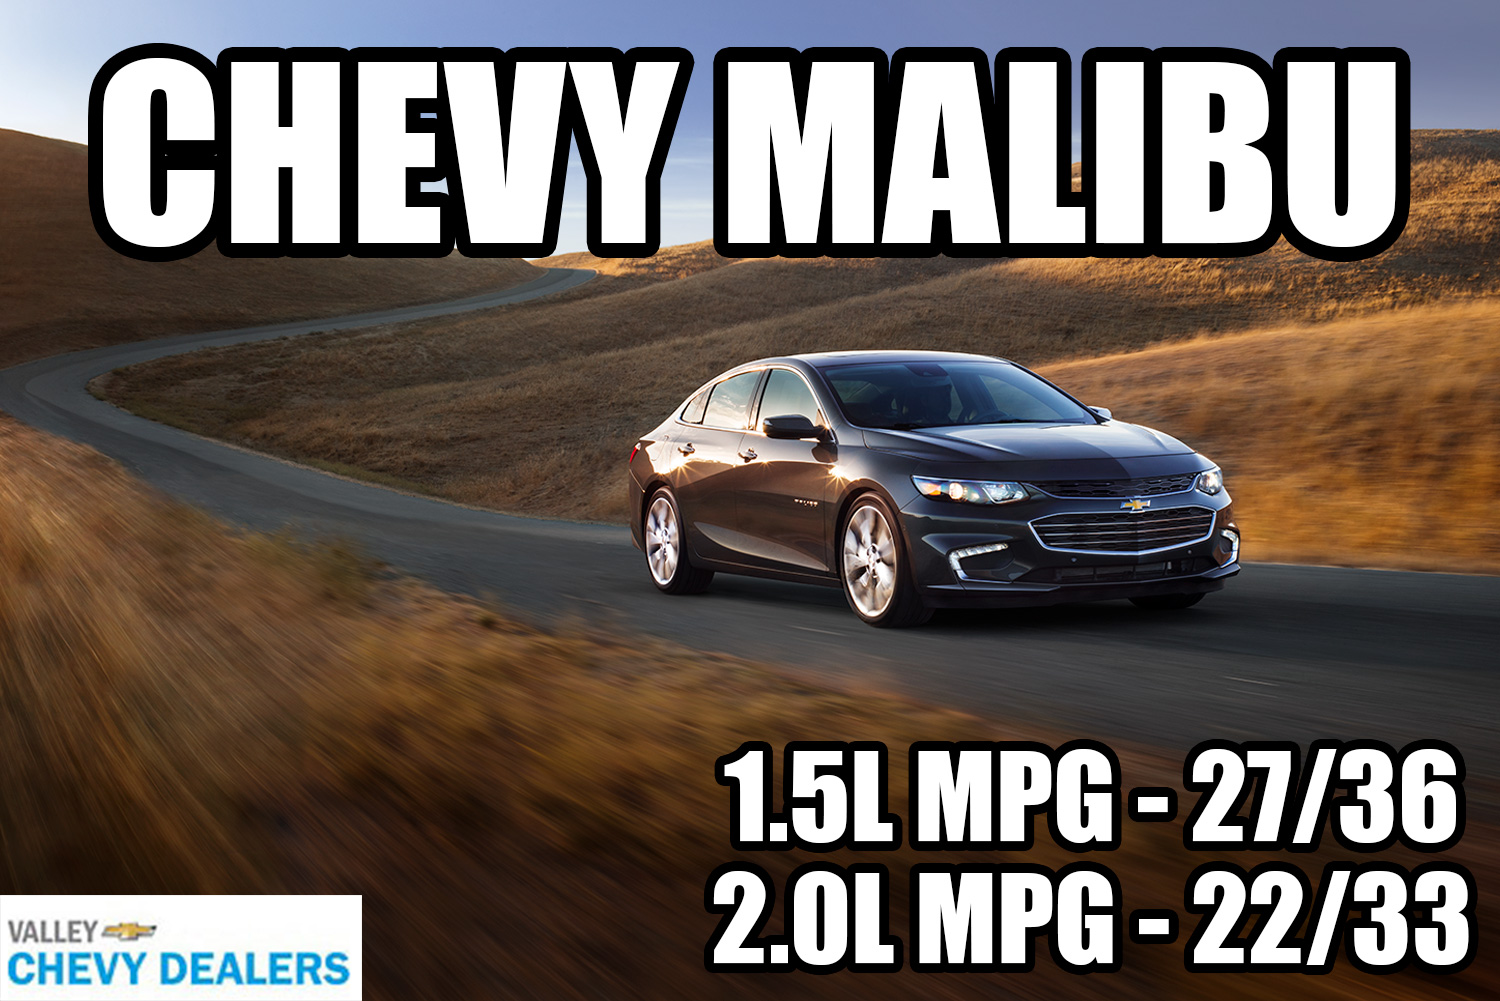 Valley Chevy in Phoenix: 2017 Chevrolet Malibu vs Impala - Which One Should I Buy? - Malibu MPG